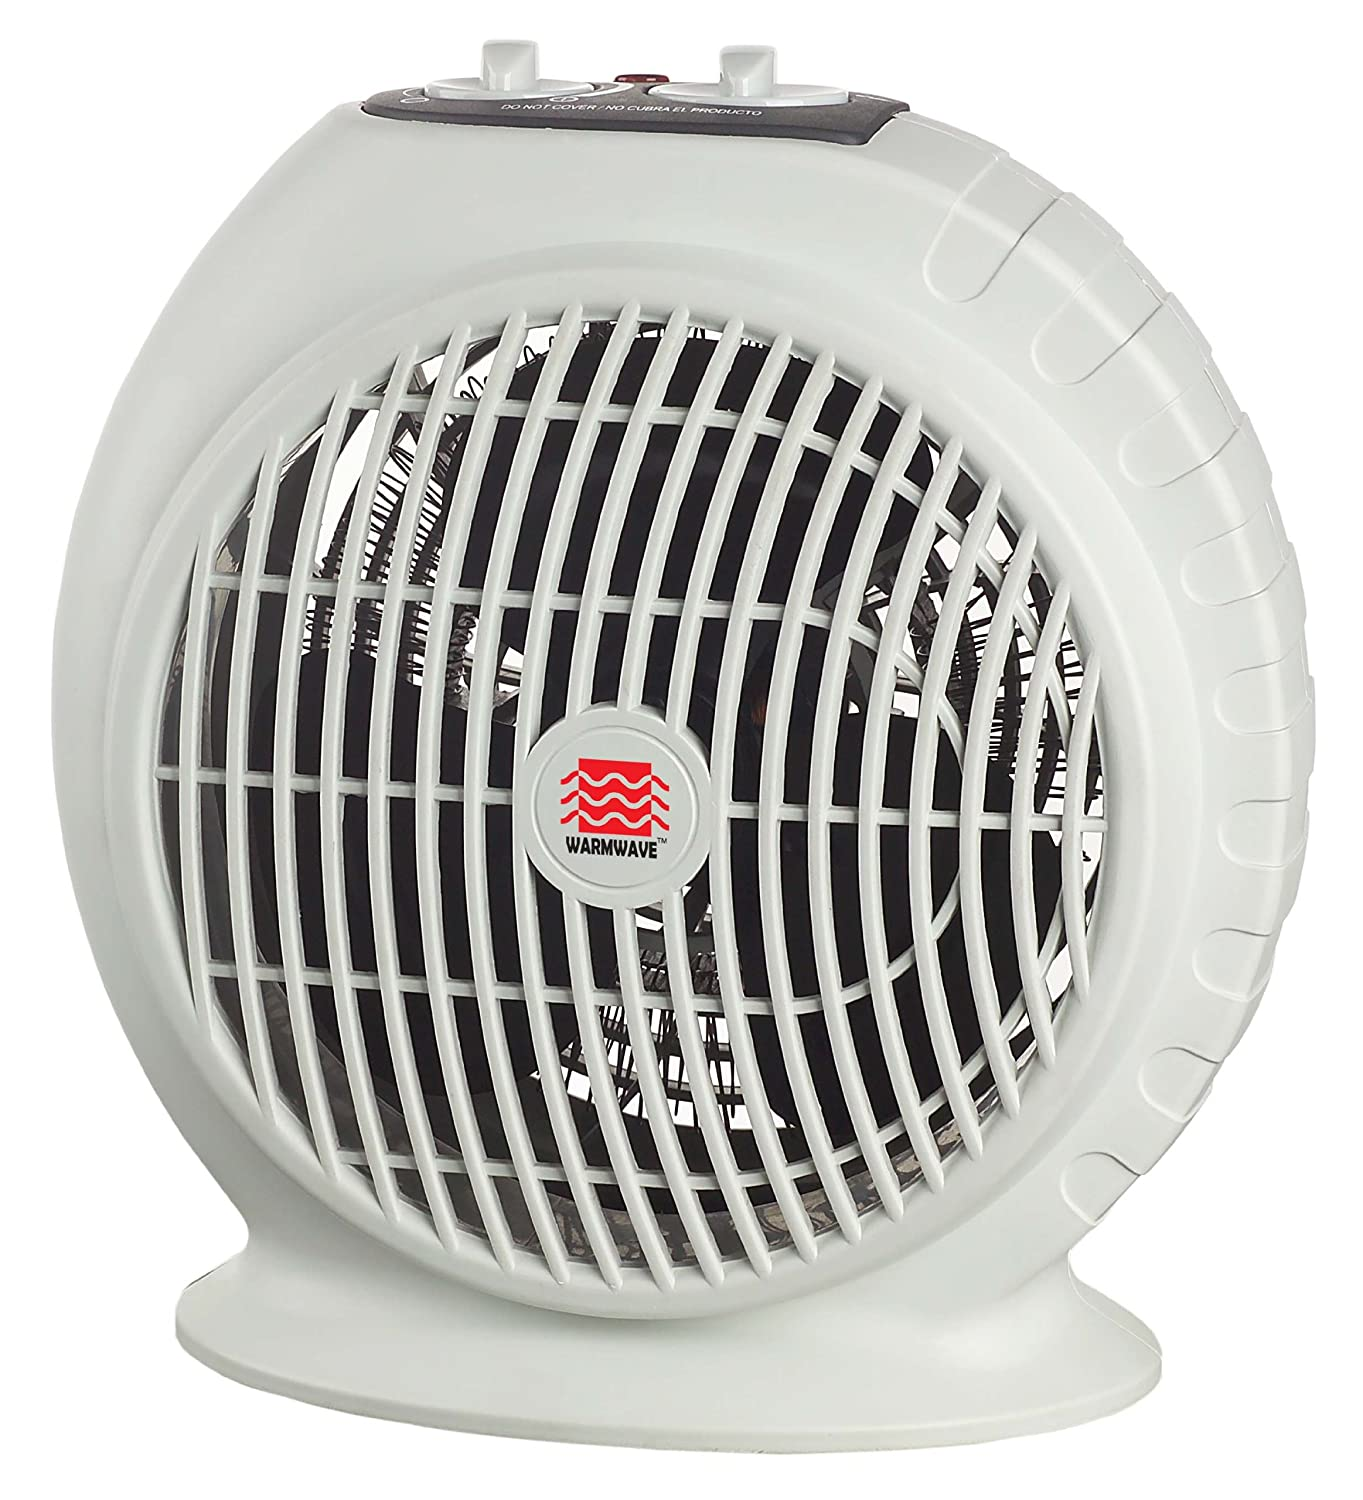 Warmwave fan portable space room heater with thermostat small cold winter new ebay - Small portable space heater paint ...